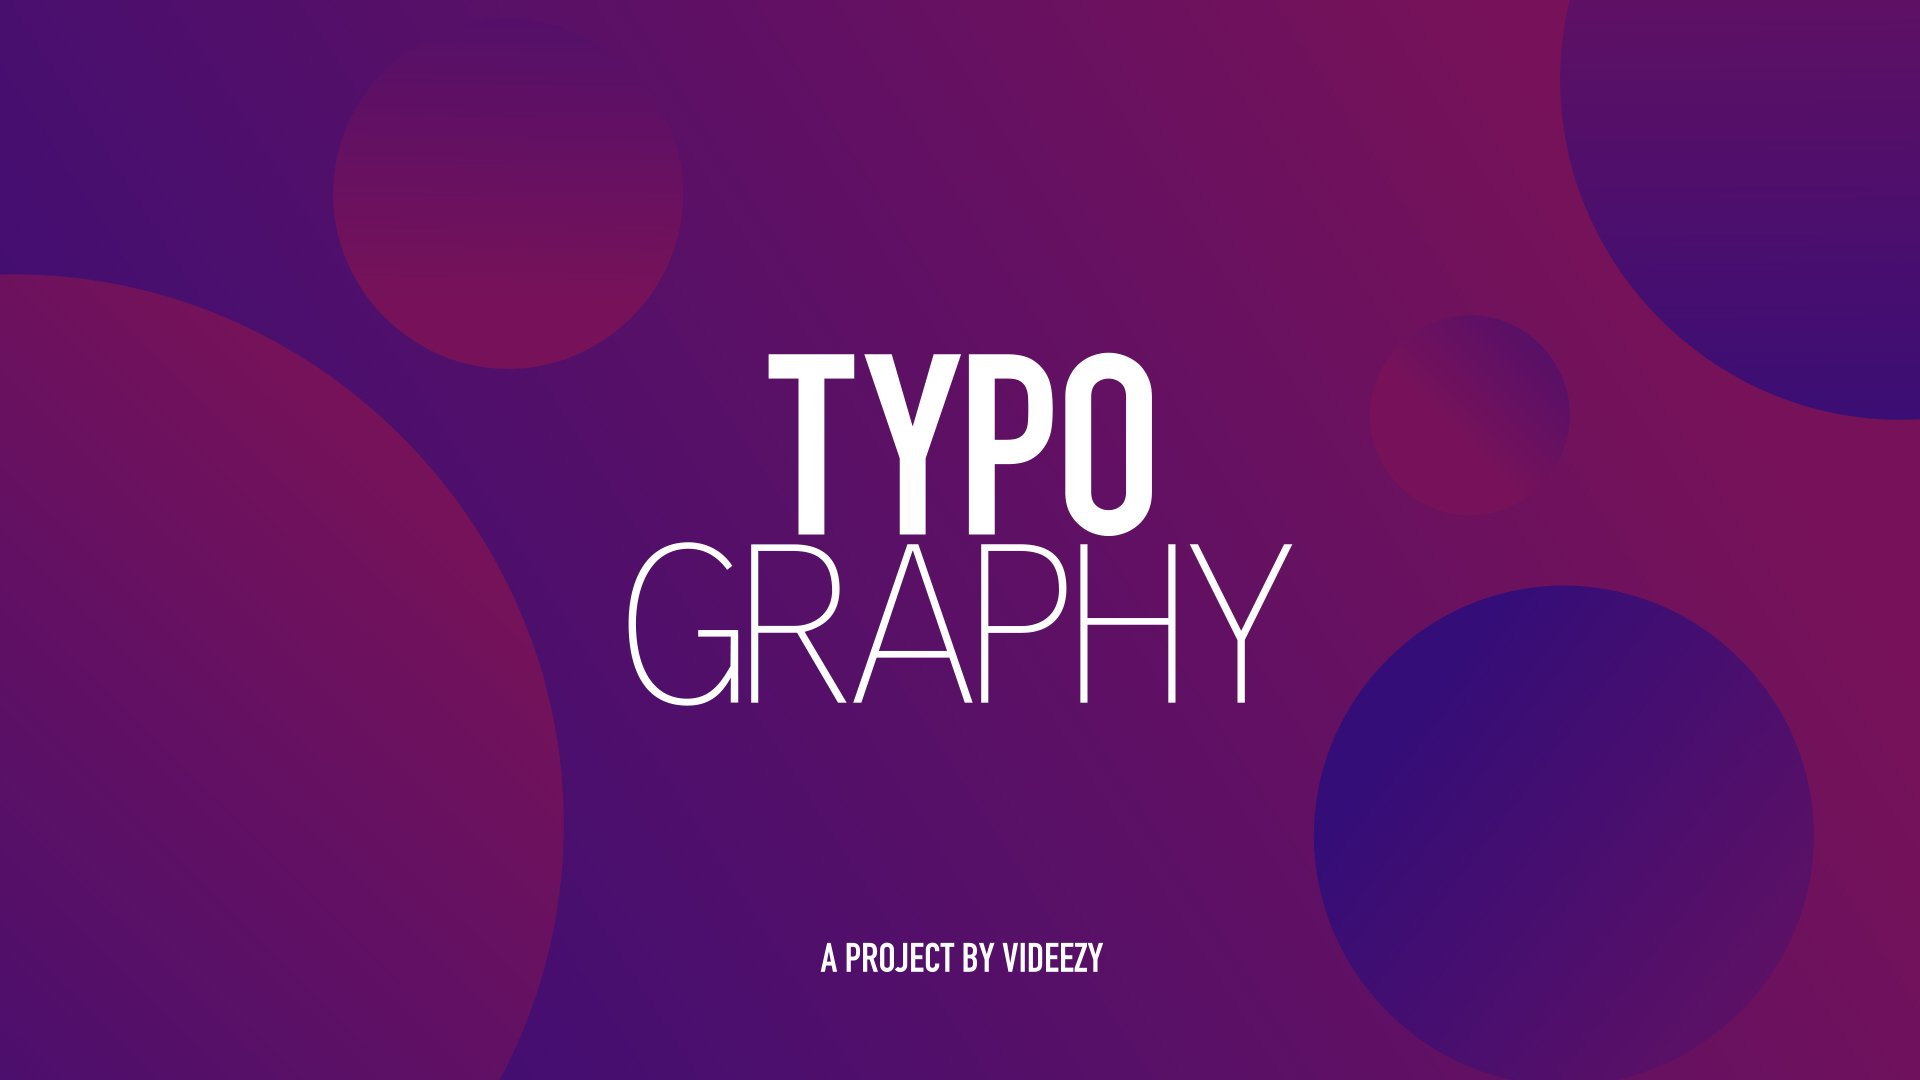 Modern Typography Titles After Effects Template 01 - Free HD